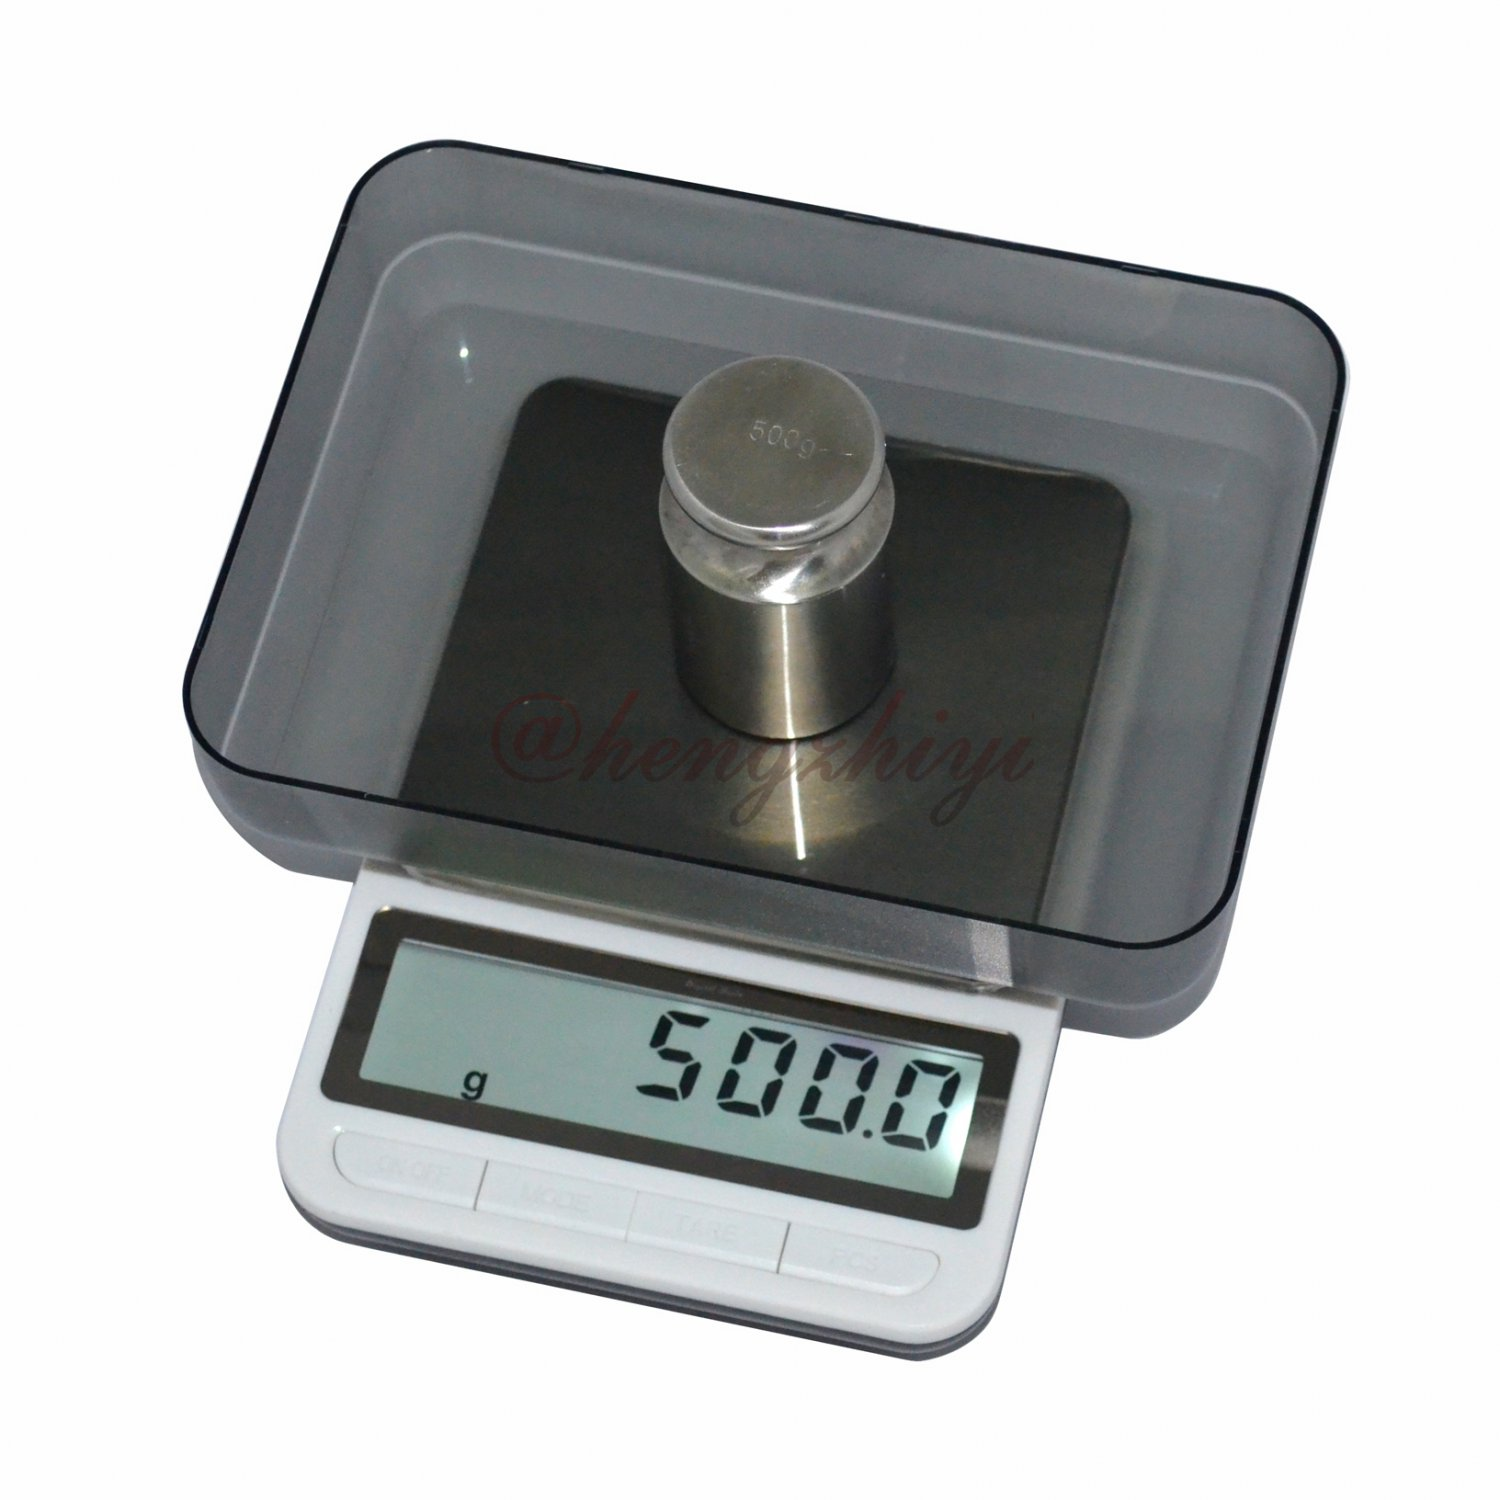 New 3kg x 0.1g Digital Precision Jewelry & Kitchen Scale w Big Platform+Counting, Free Shipping